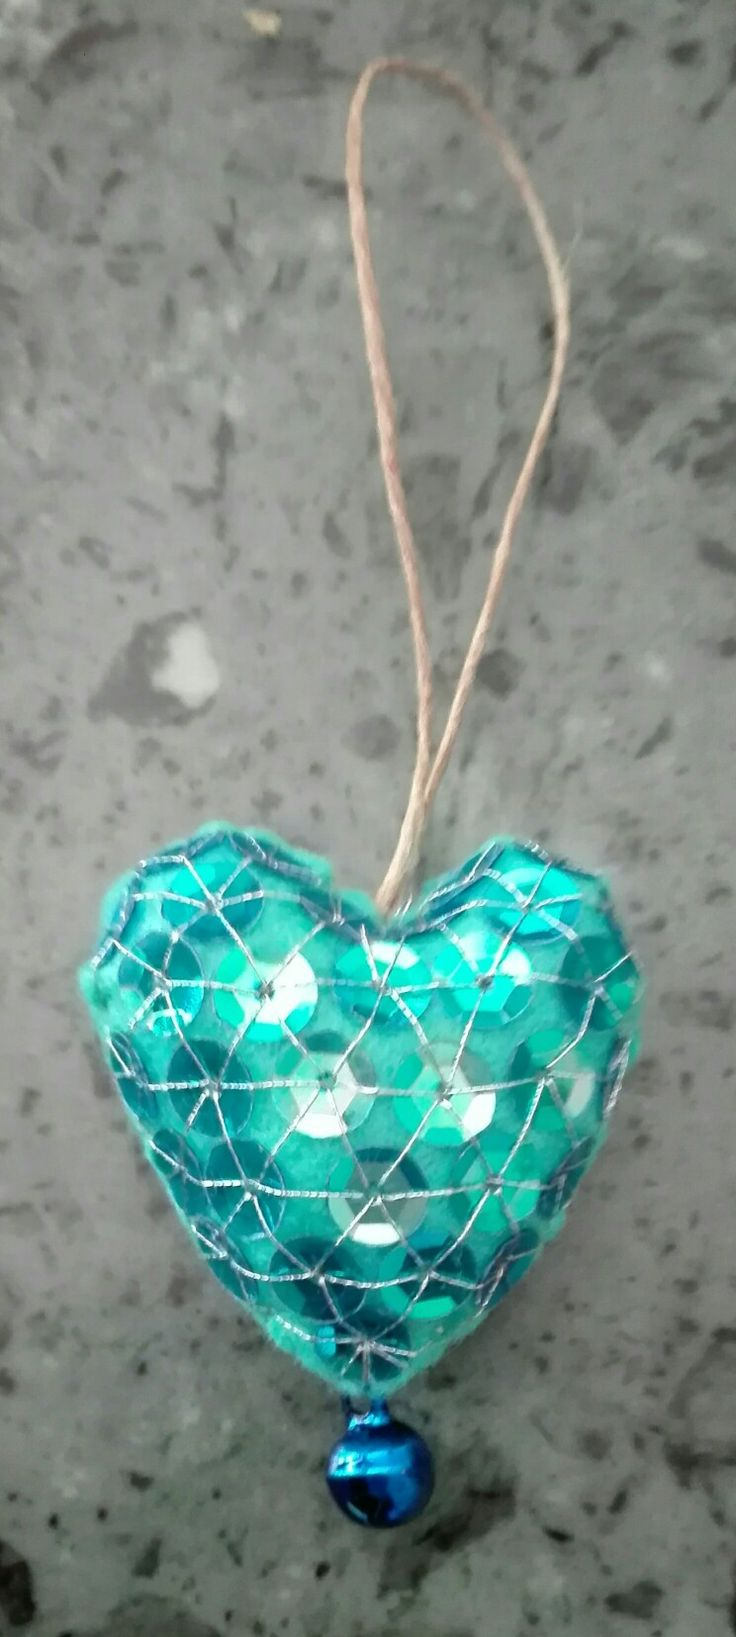 heart for pinella - 27 febrary 2017 - handmade by mariarosa - blue felt, bell and 63 paillettes.